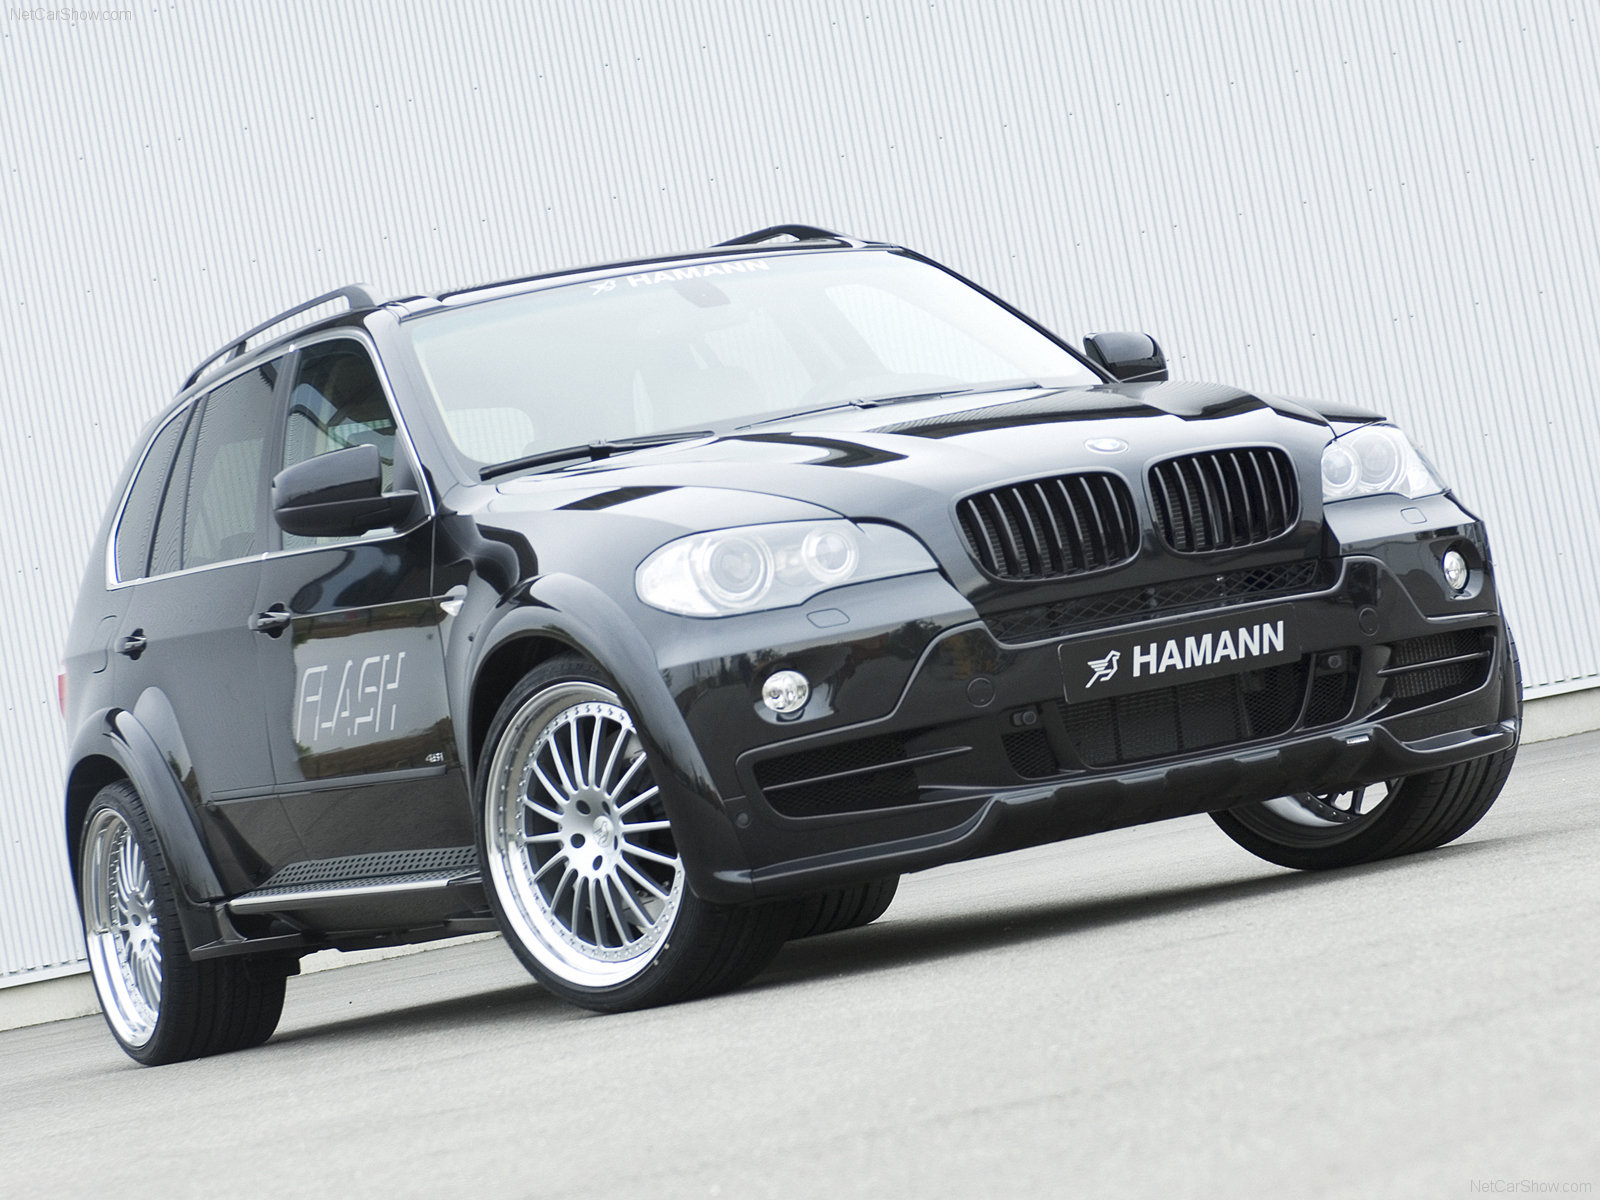 britains got talent show 2007 hamann bmw x5 e 70 rear. Black Bedroom Furniture Sets. Home Design Ideas